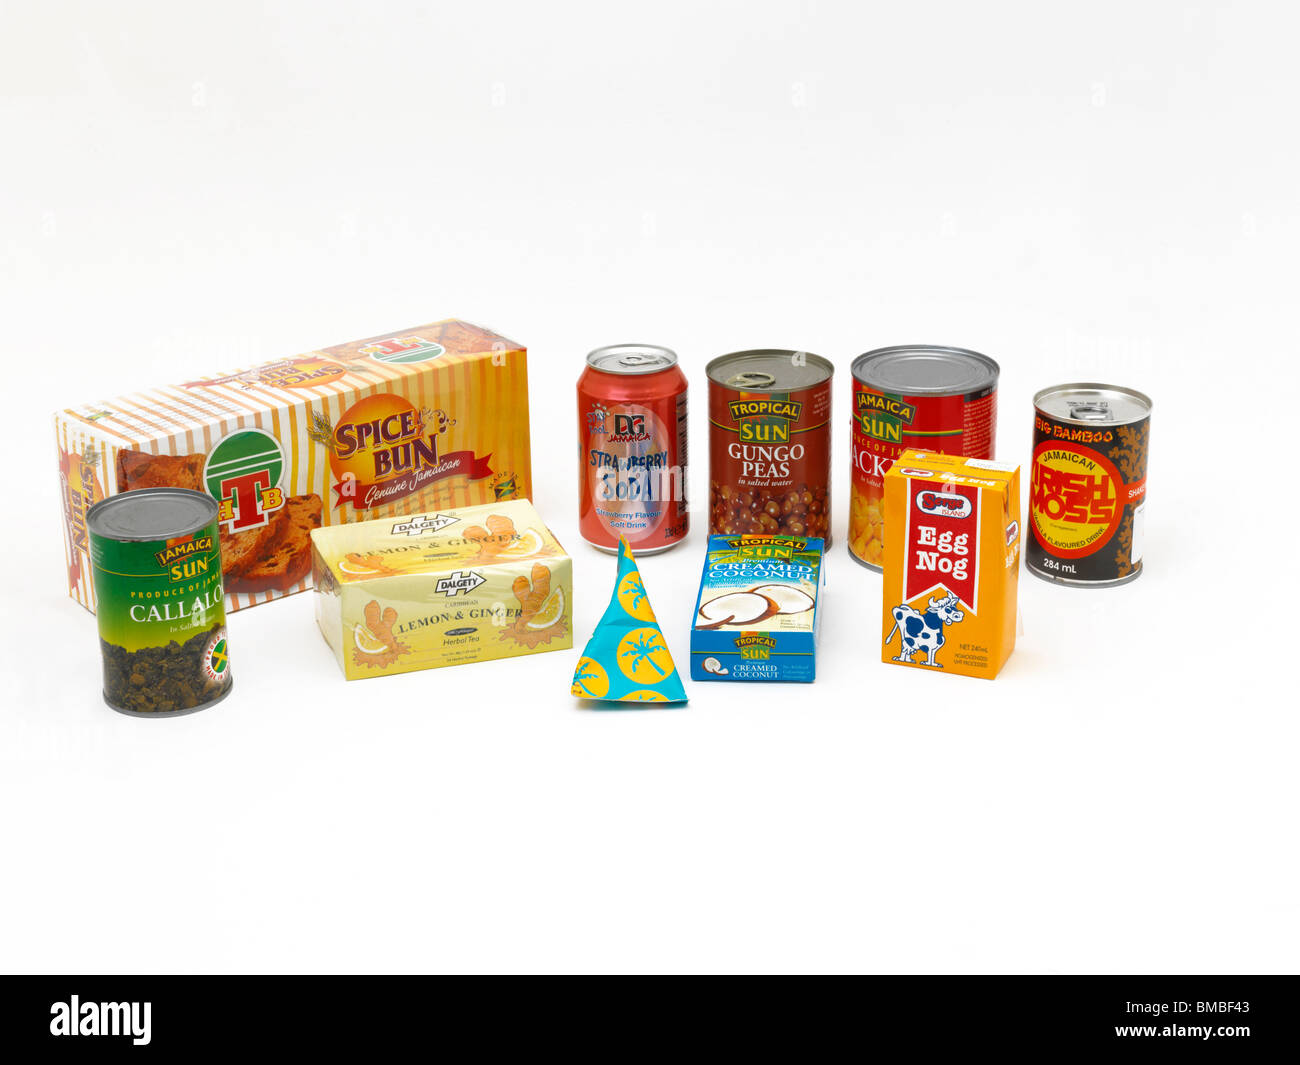 Selection Of Packets Of Caribbean Food In Shapes Of Prisms, Triangular, Cylindrical And Cuboid - Stock Image